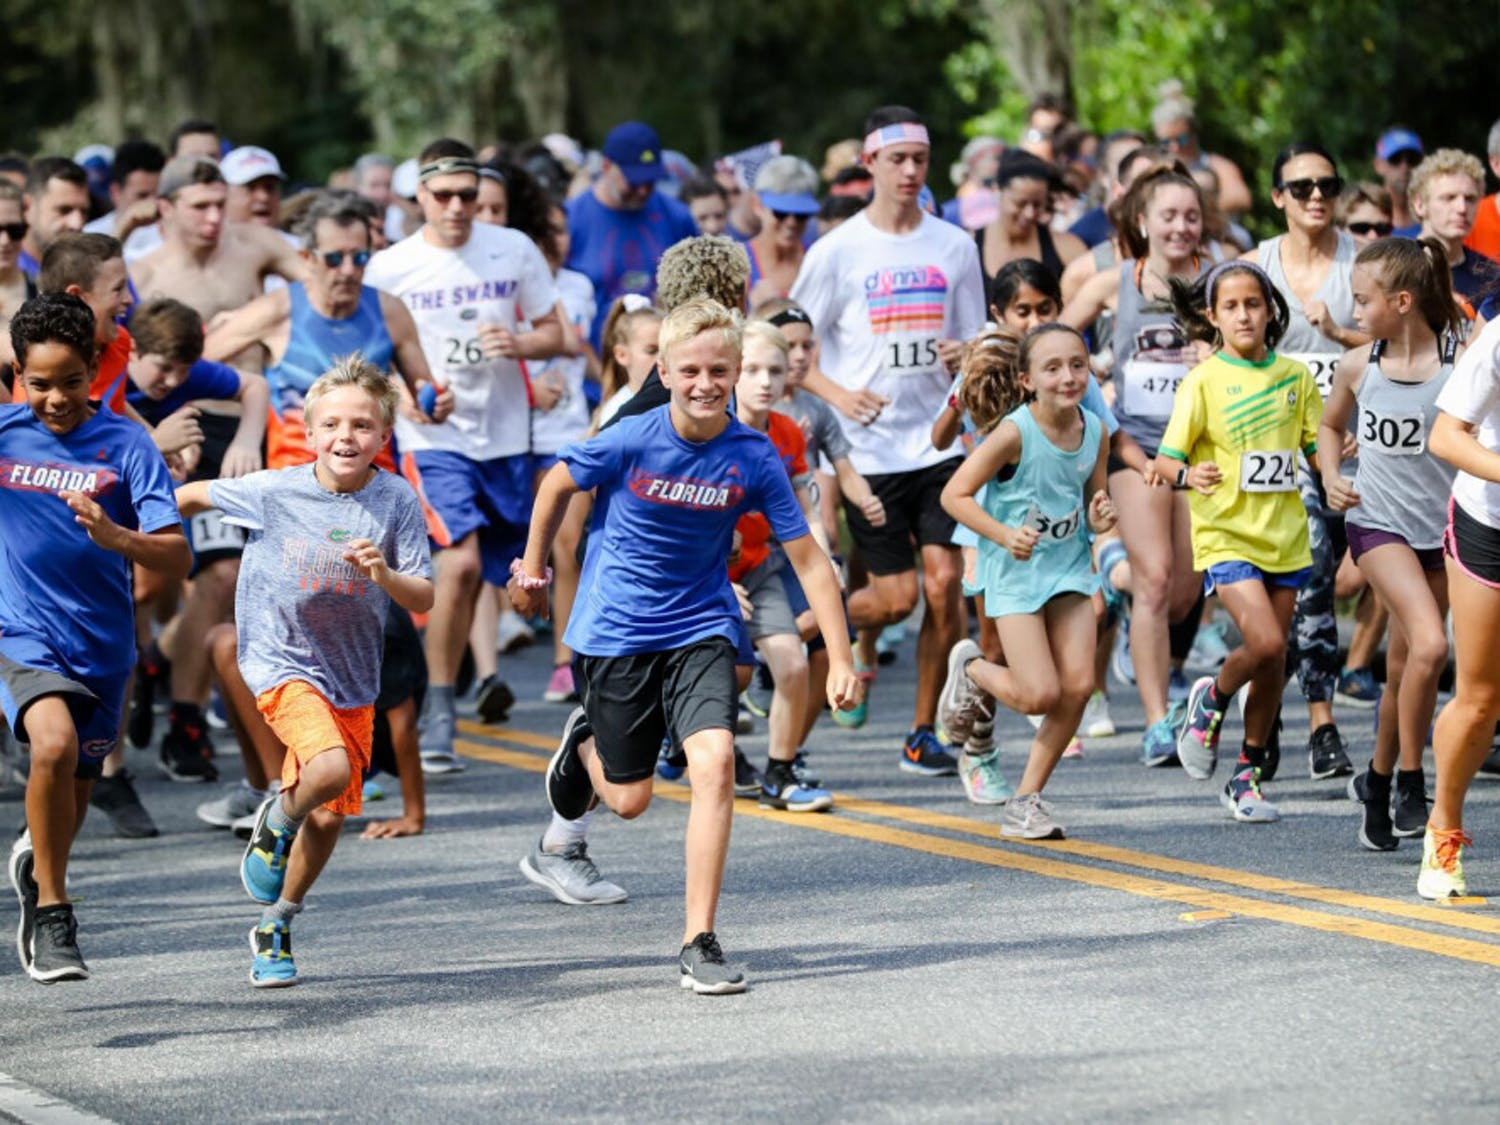 Participants run in the Gator Gallop 5k, one of the various events that takes place during homecoming week at UF in Fall 2019.  (Photographer: Adler Garfield, 2019 Director of Photography)